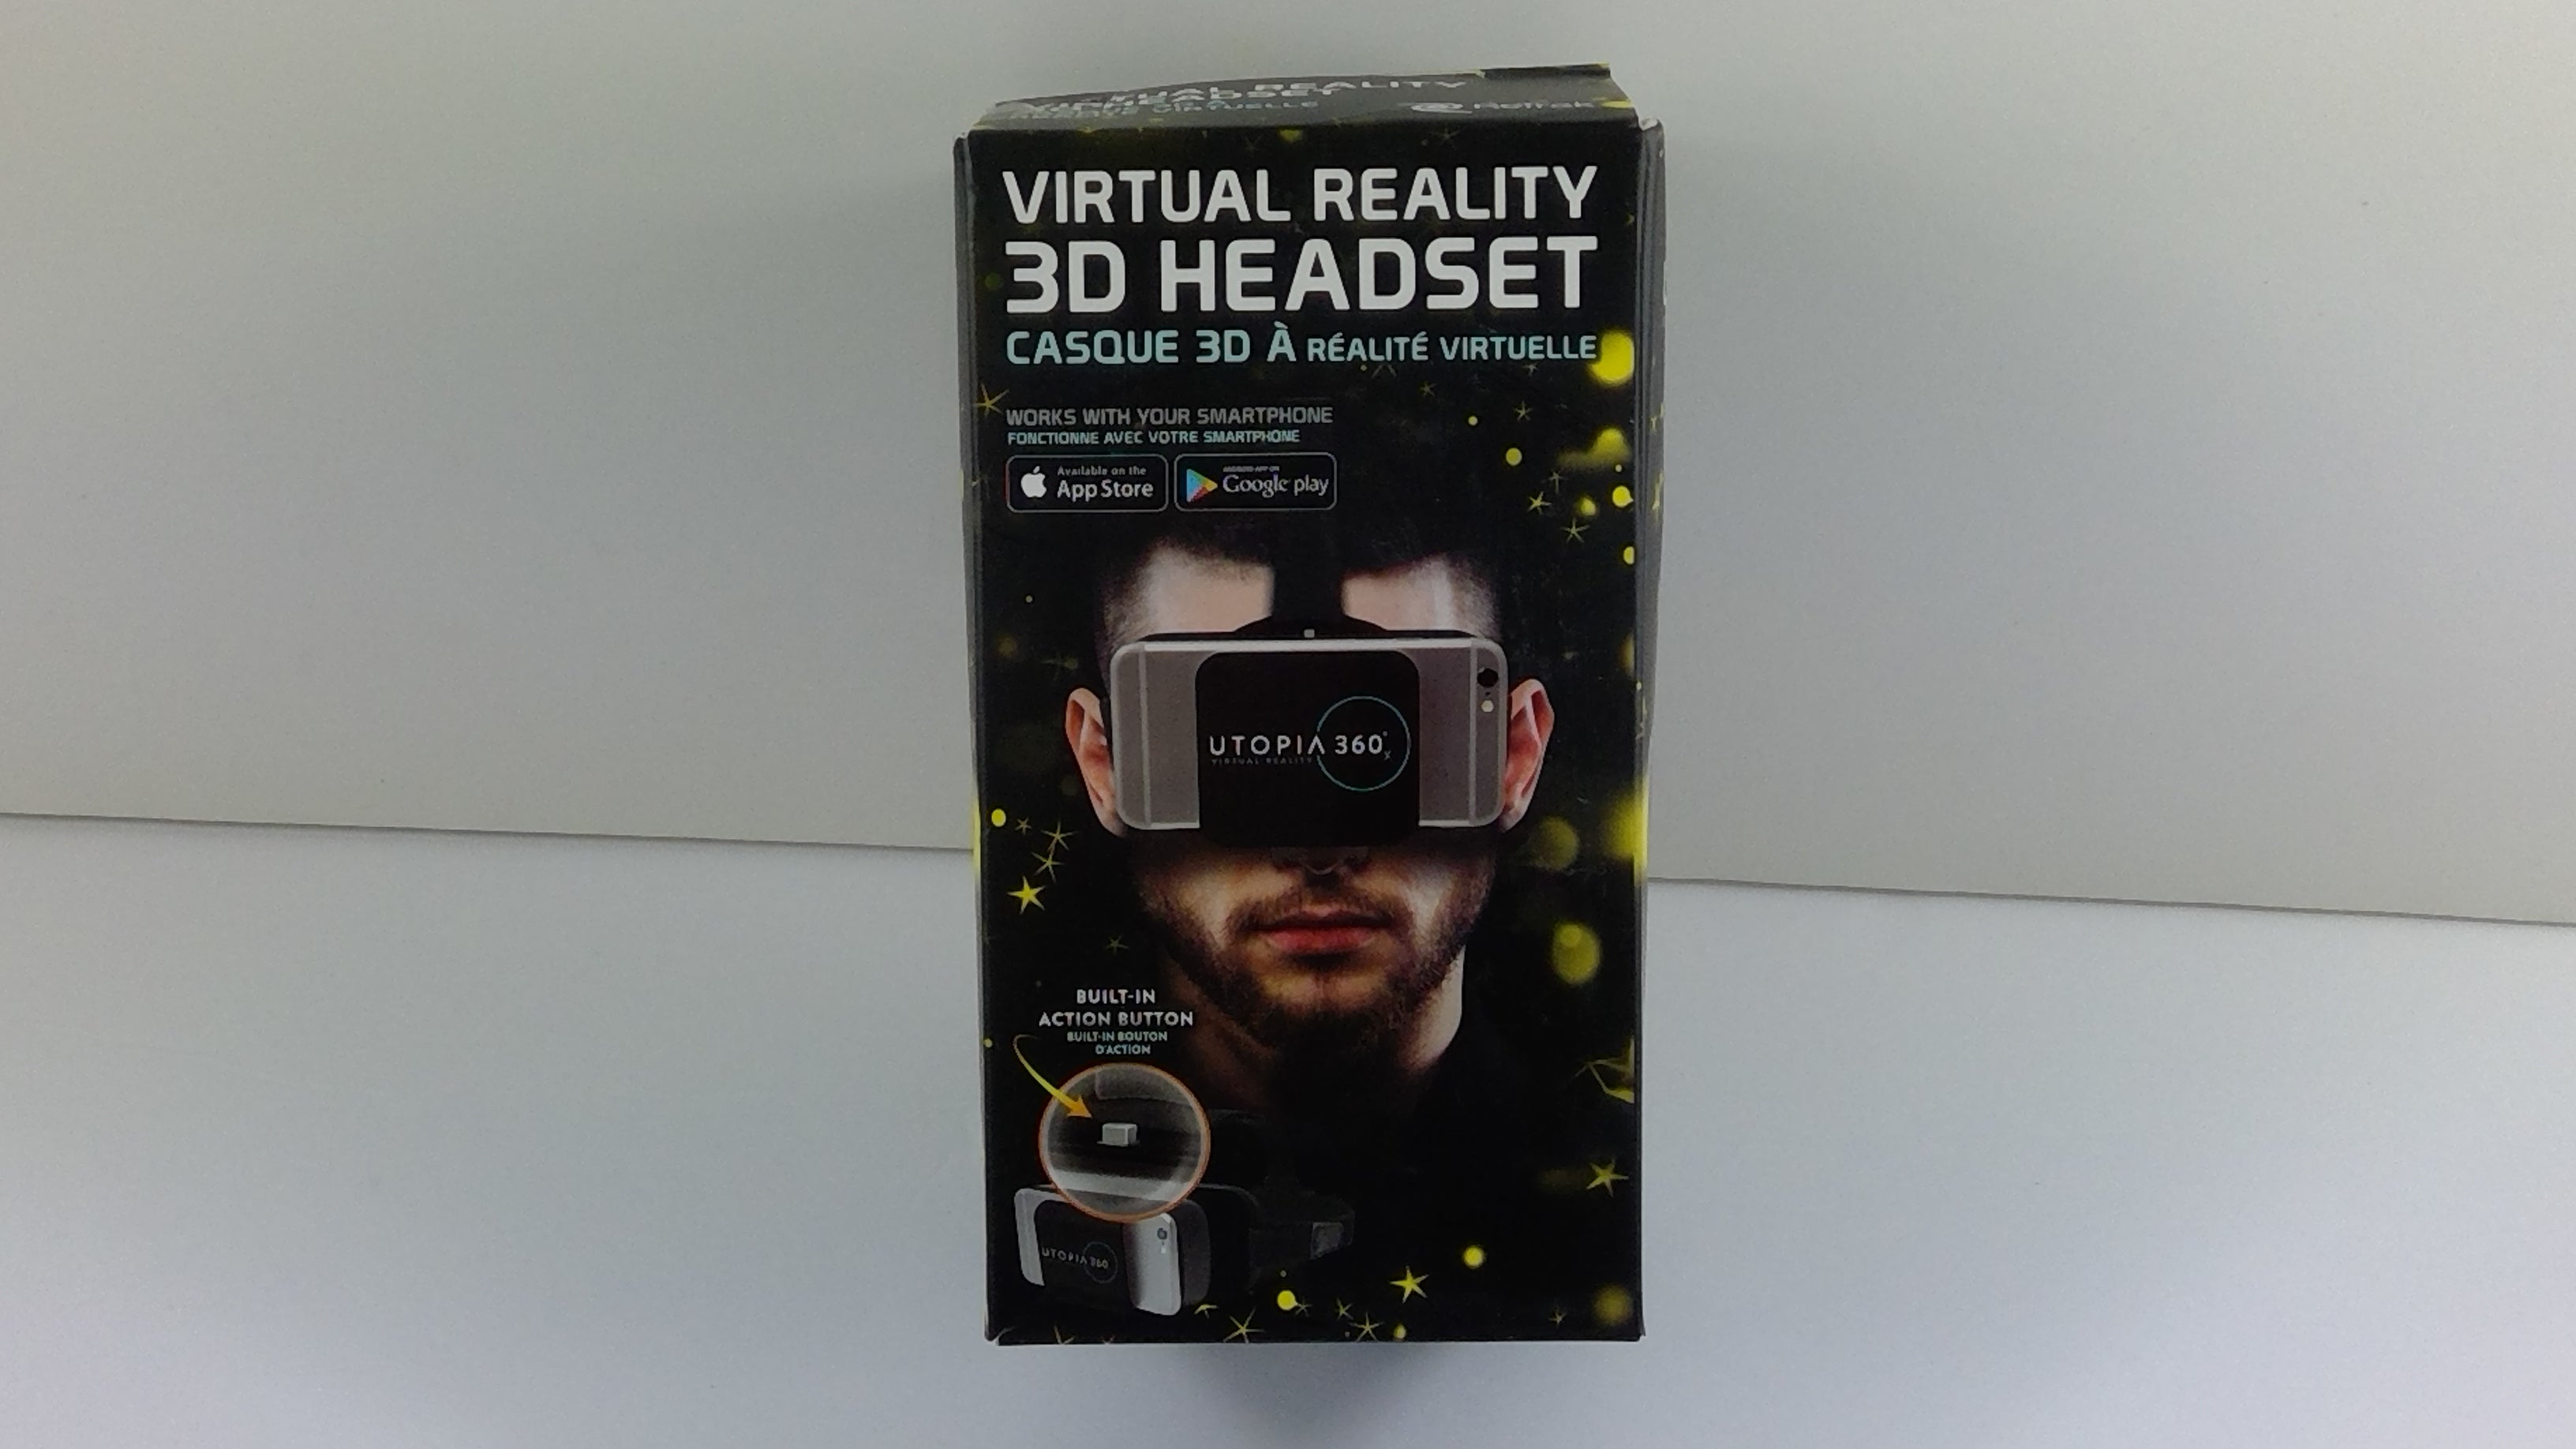 Utopia 360 Virtual Reality 3D Headset